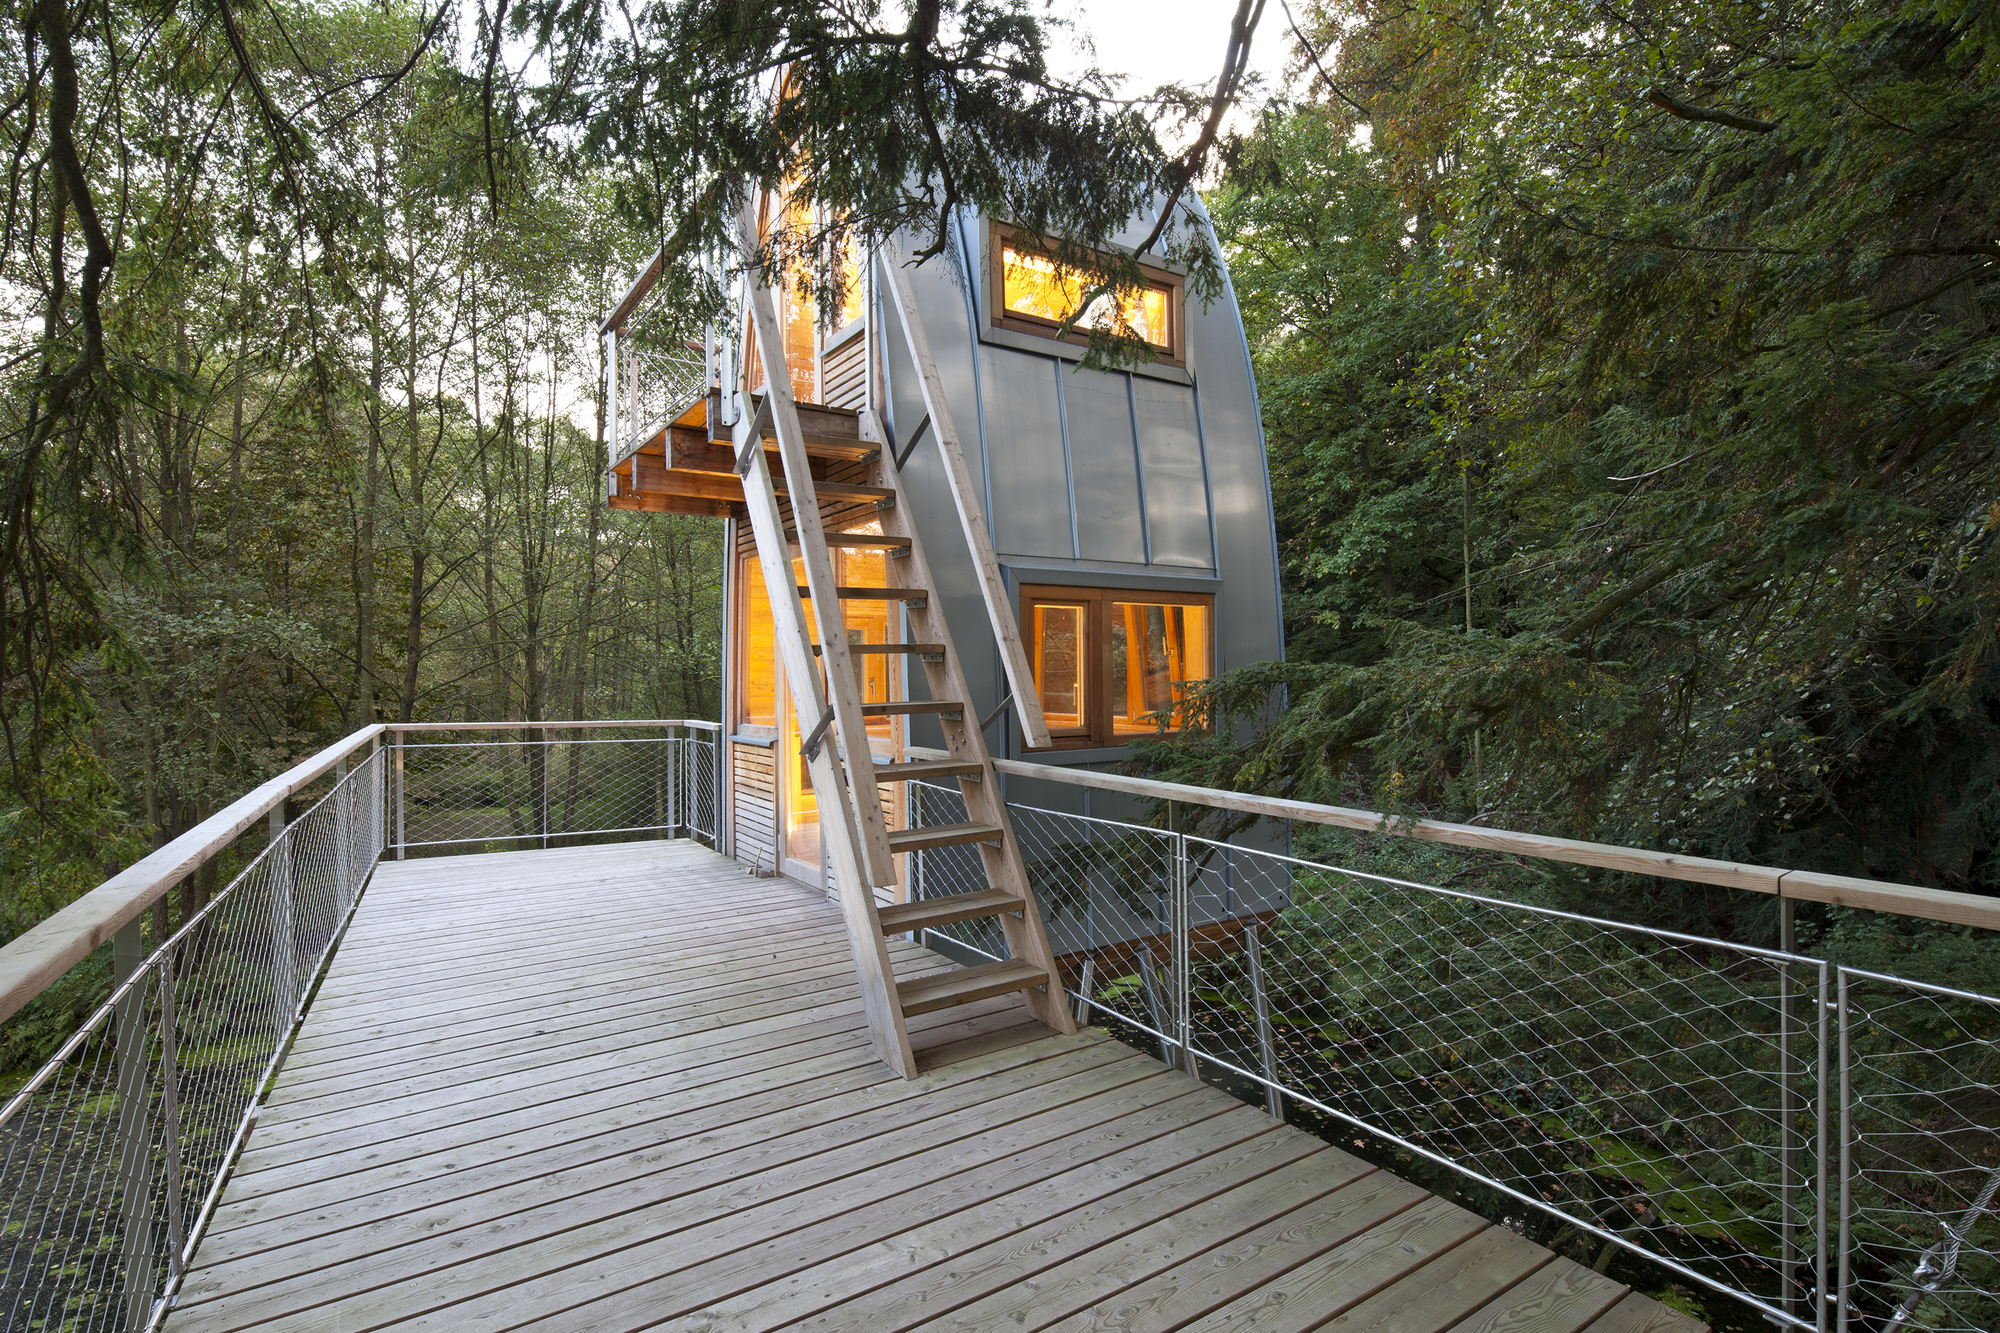 Modern tin treehouse with an illuminated interior